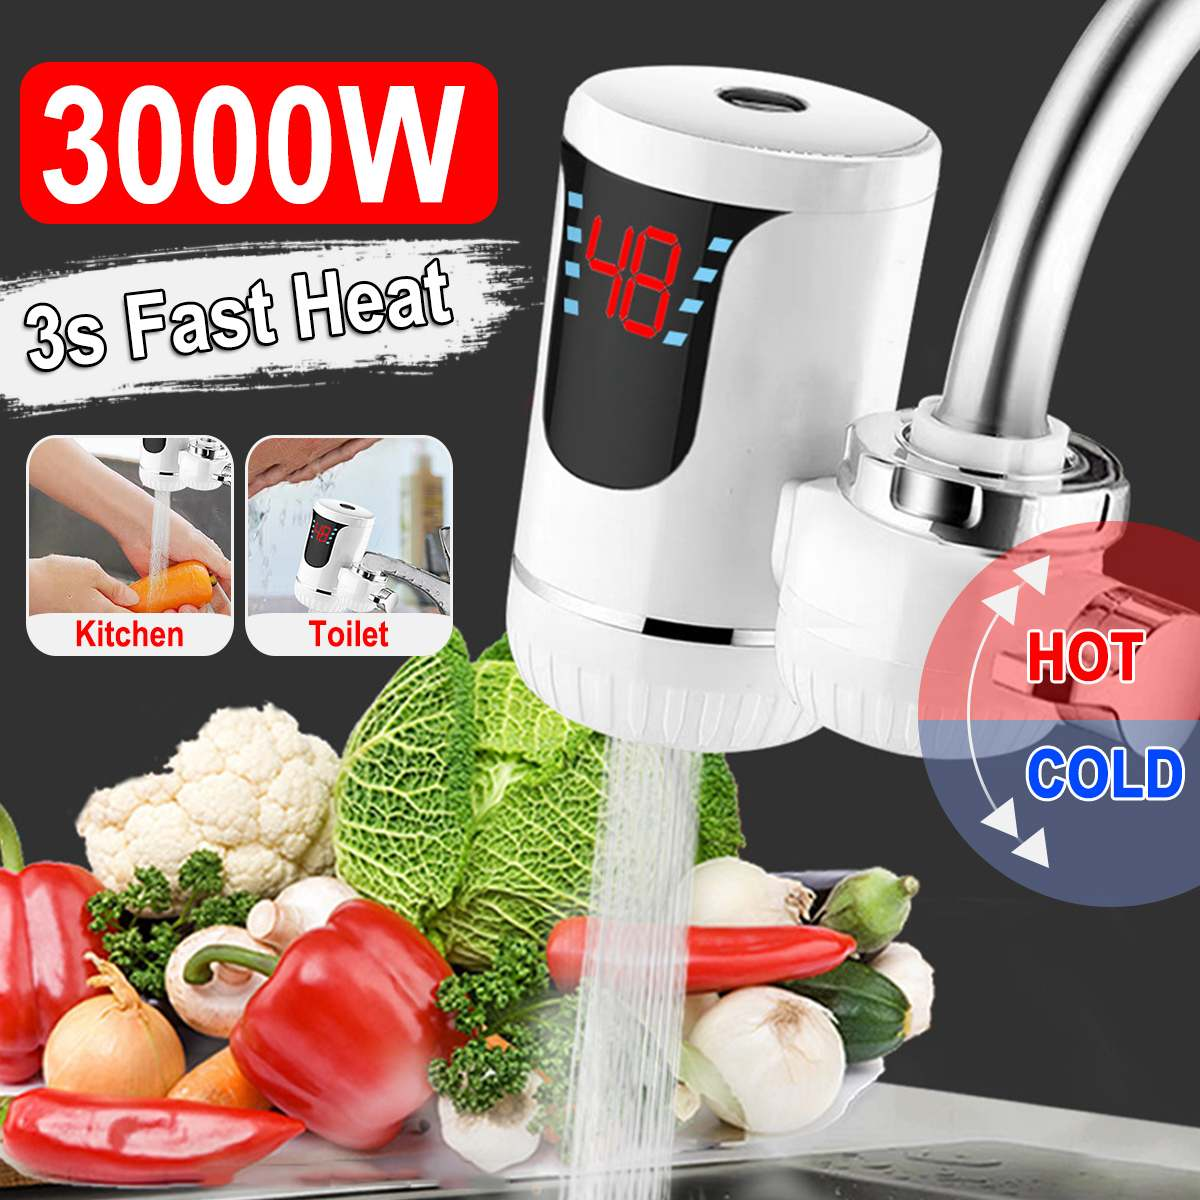 220V Electric Hot Faucet Water Heaters Kitchen Cold Heating Faucet Tankless Digital Display Instantaneous Water Heaters Tap